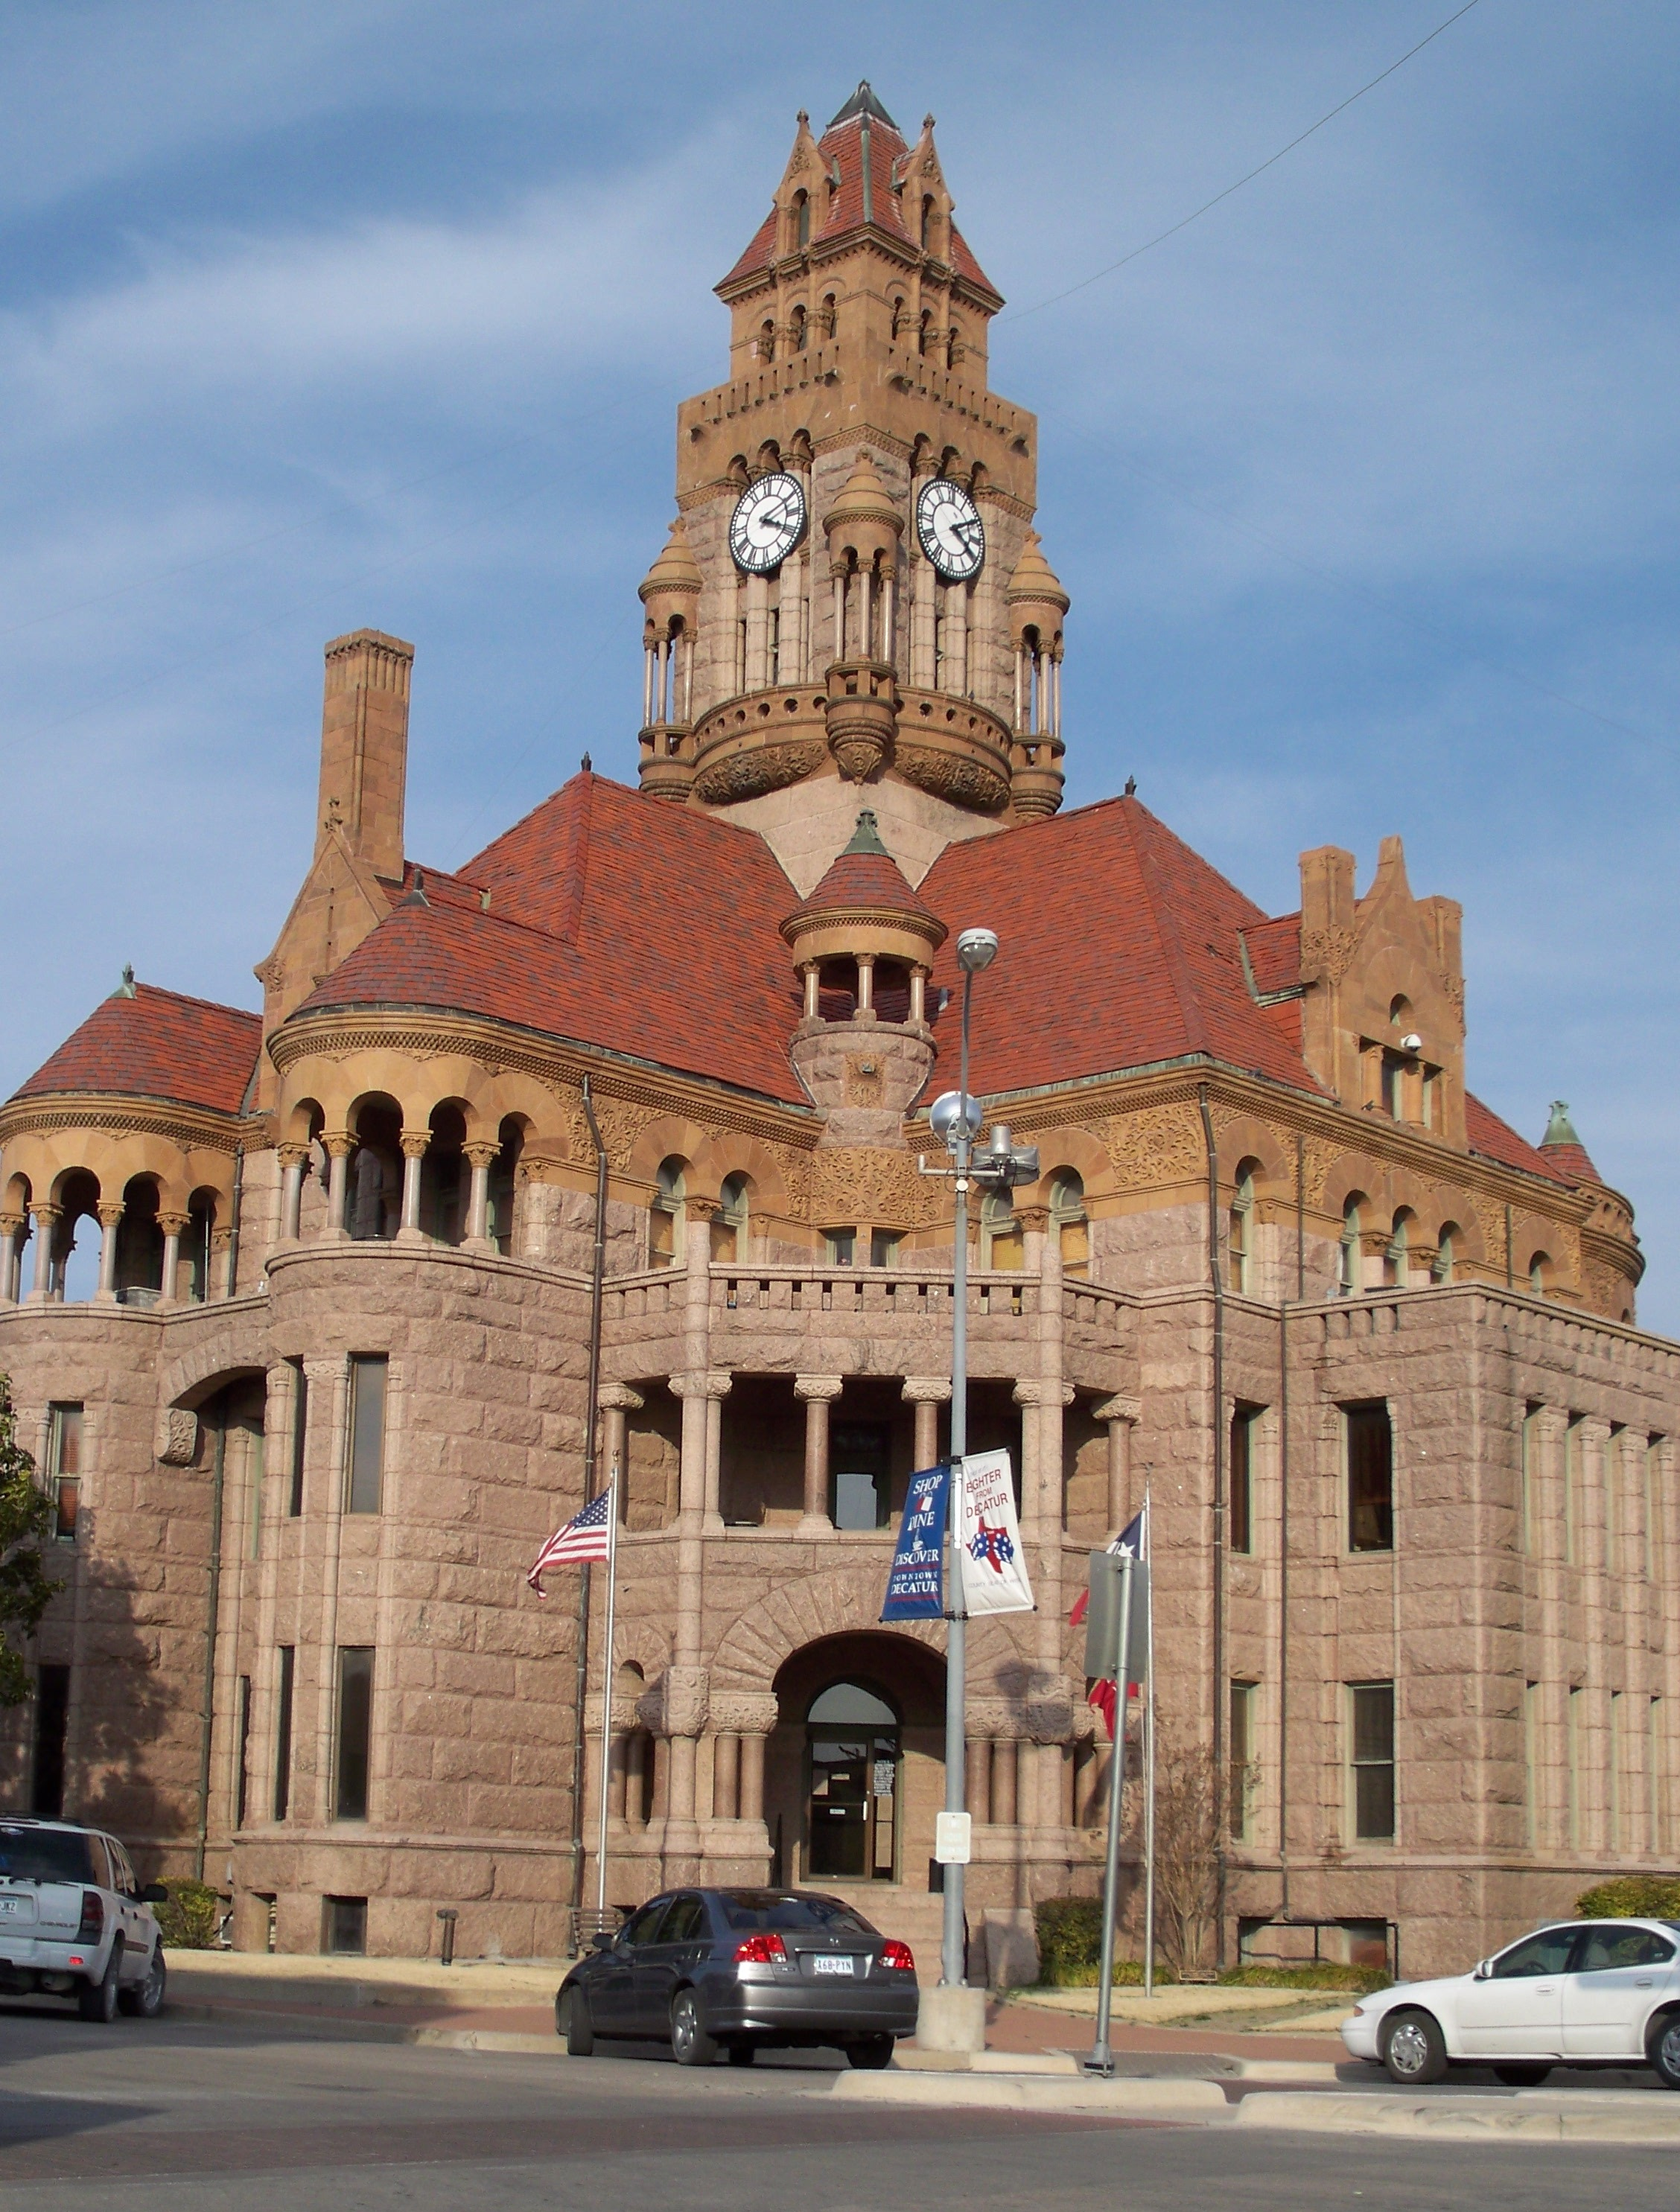 Wise Courthouse